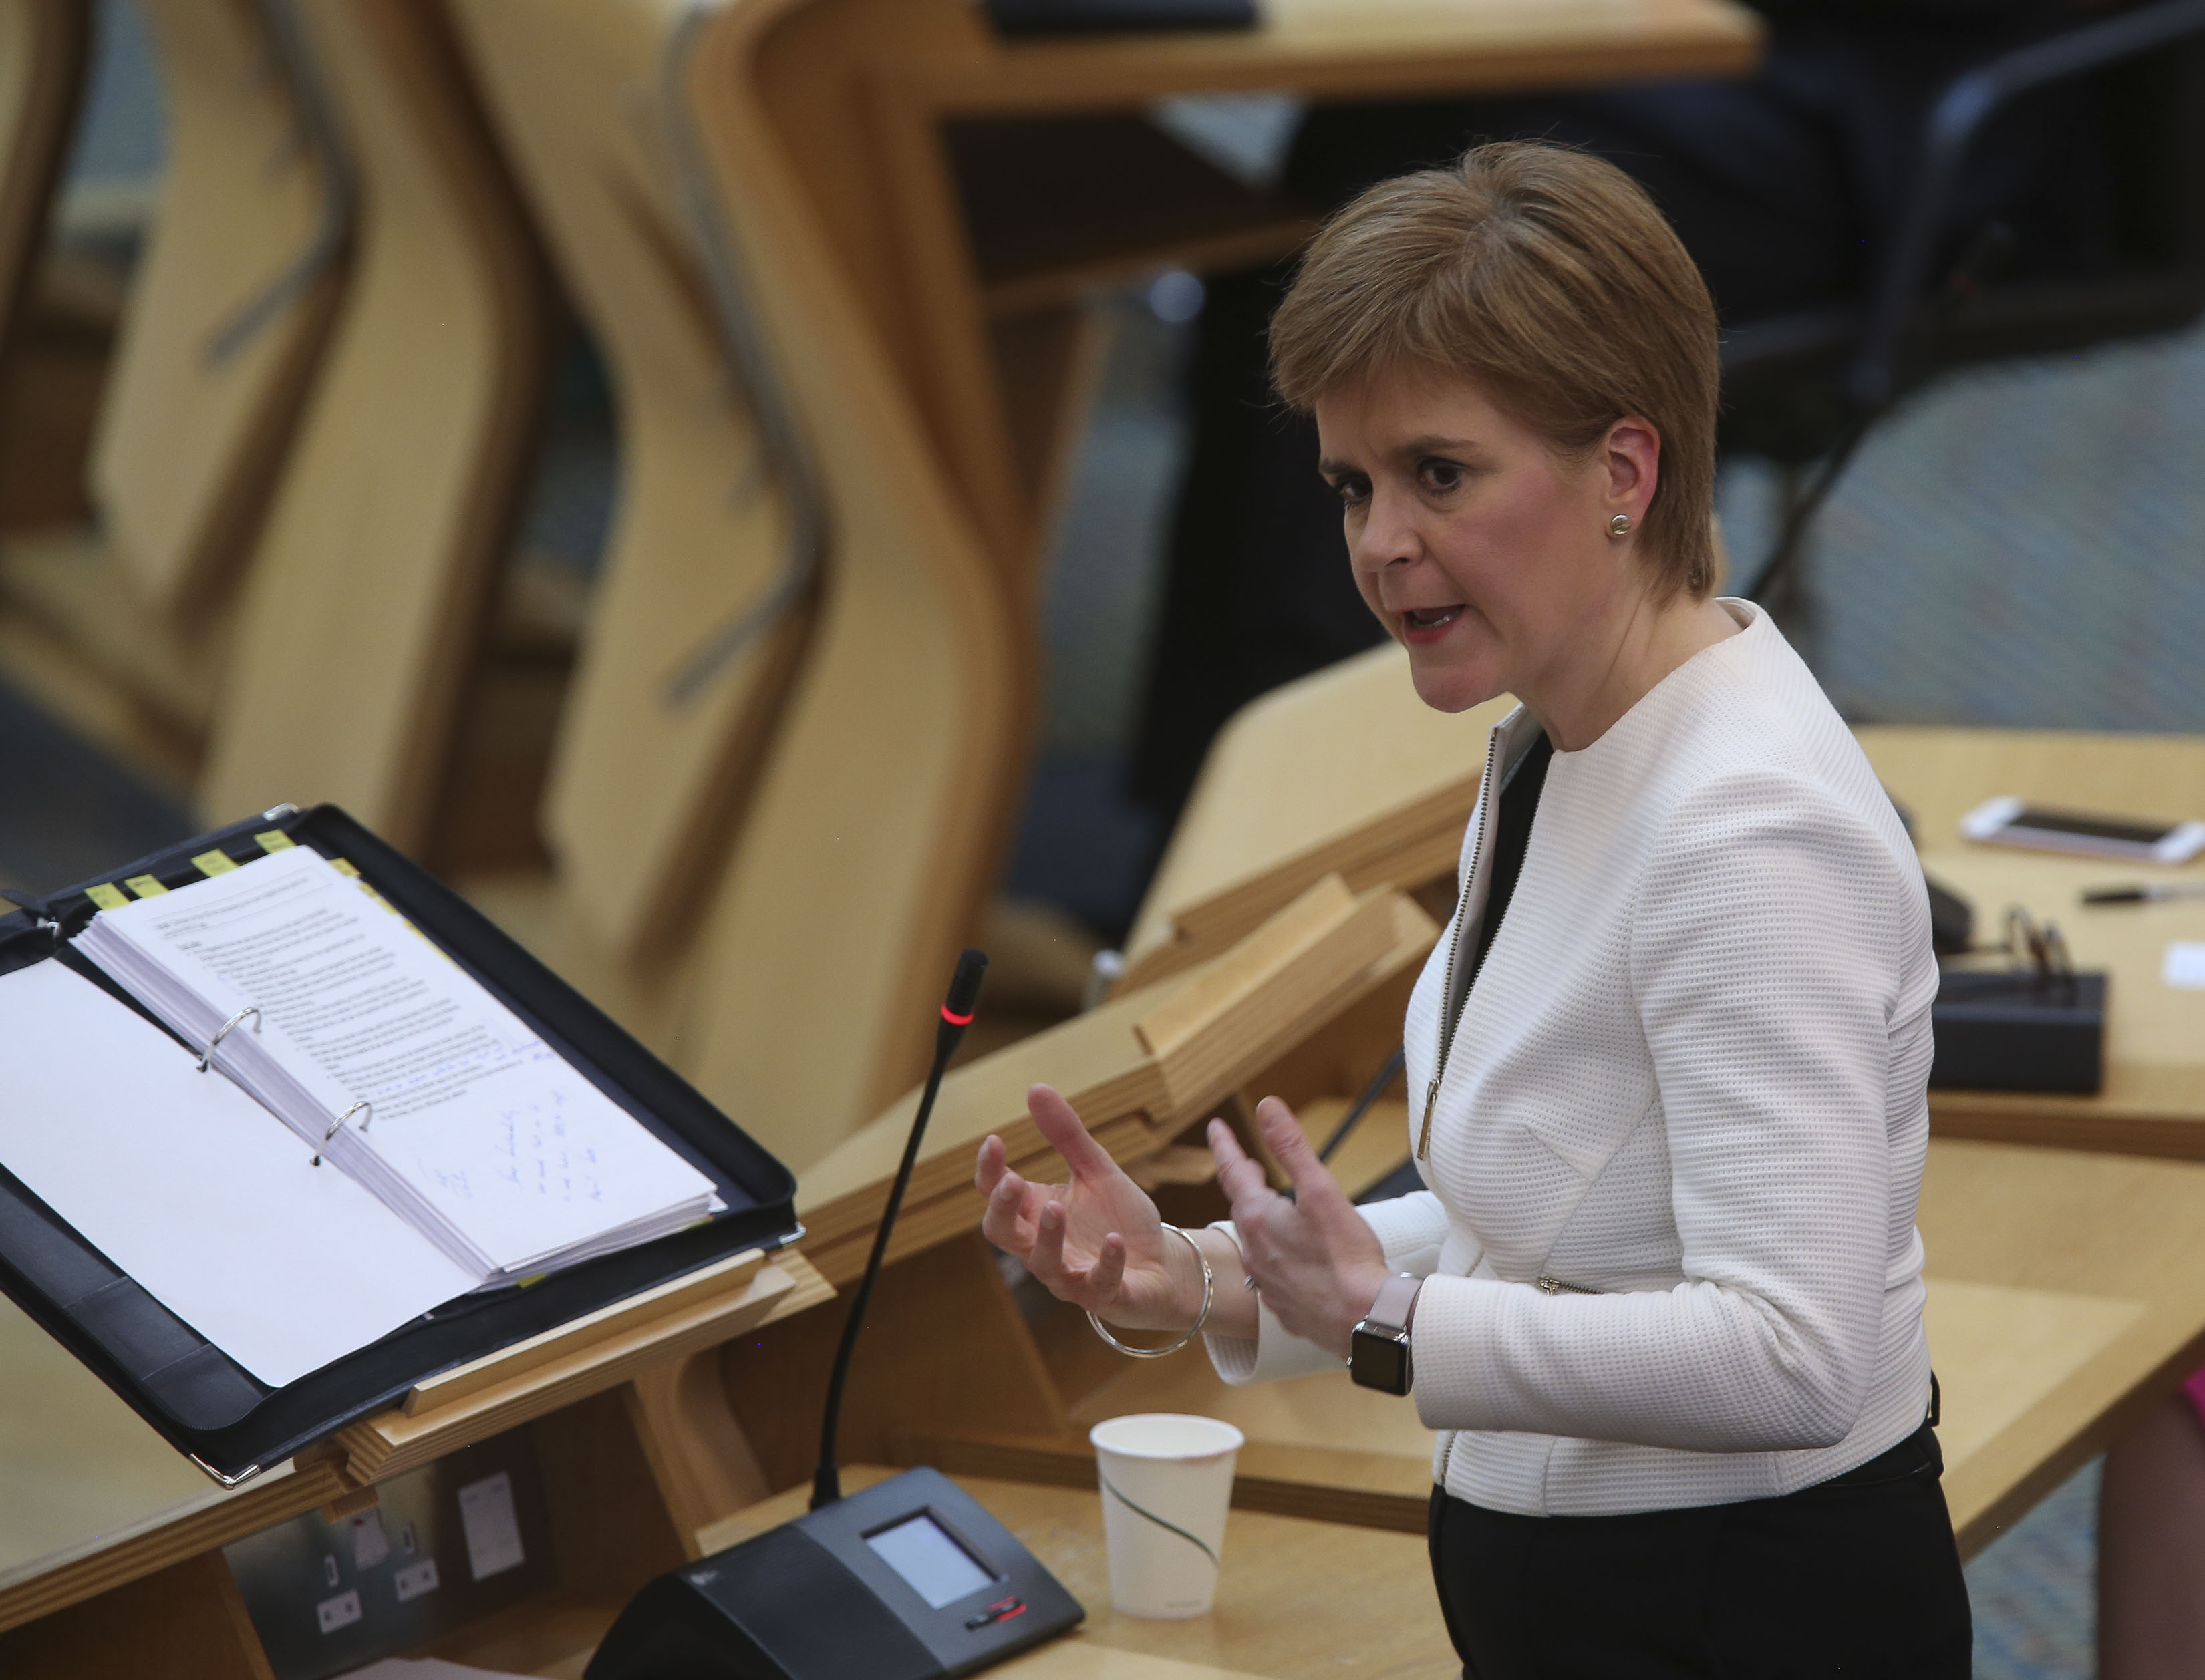 Nicola Sturgeon during Covid-19 social distancing First Minister's Questions at the Scottish Parliament, Edinburgh.